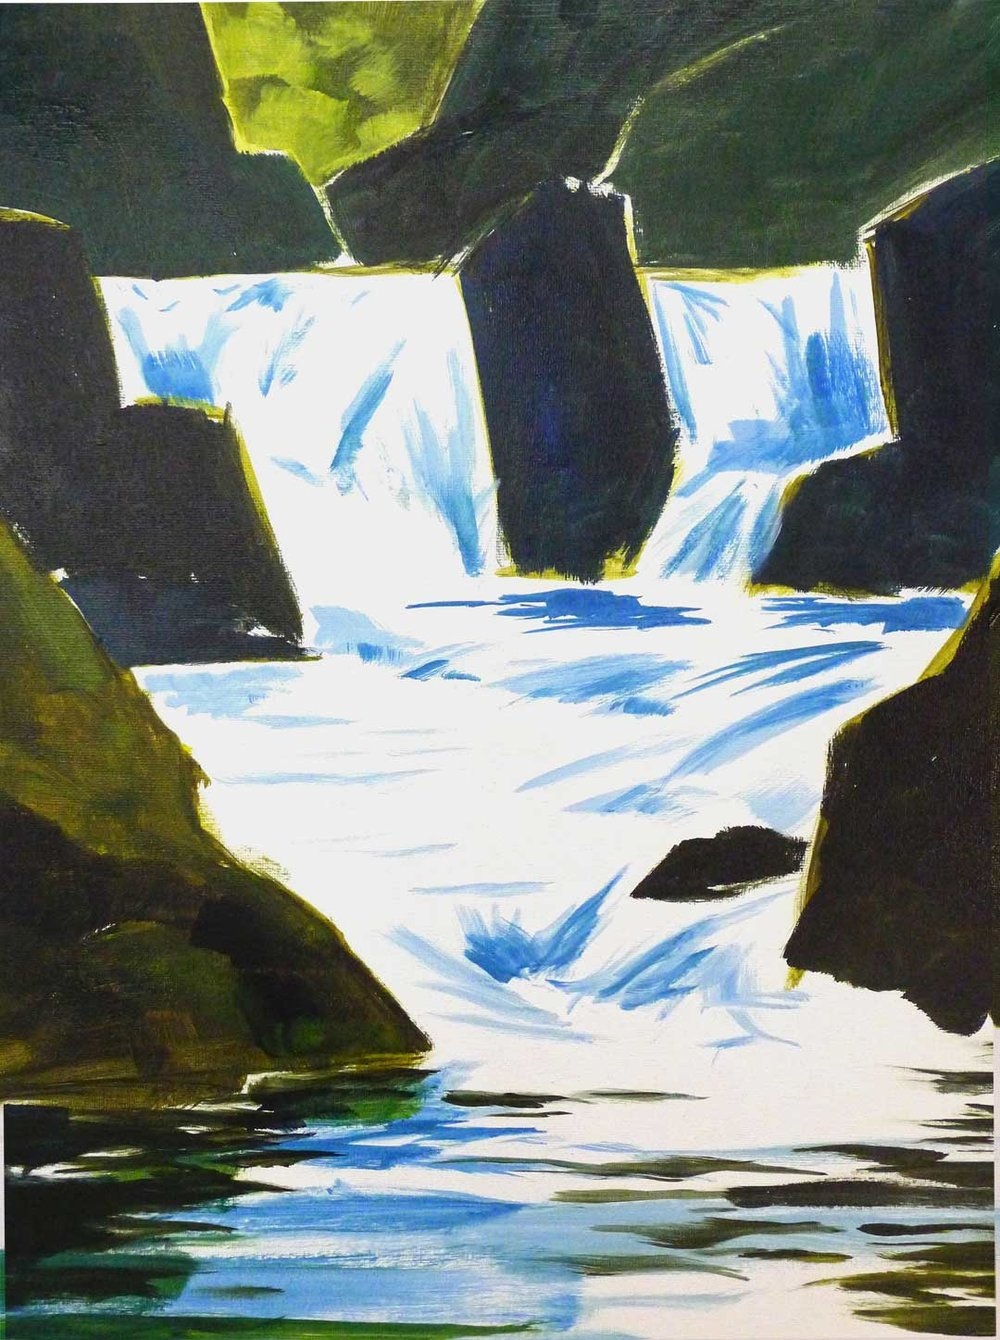 waterfall-paint-demo-5.jpg